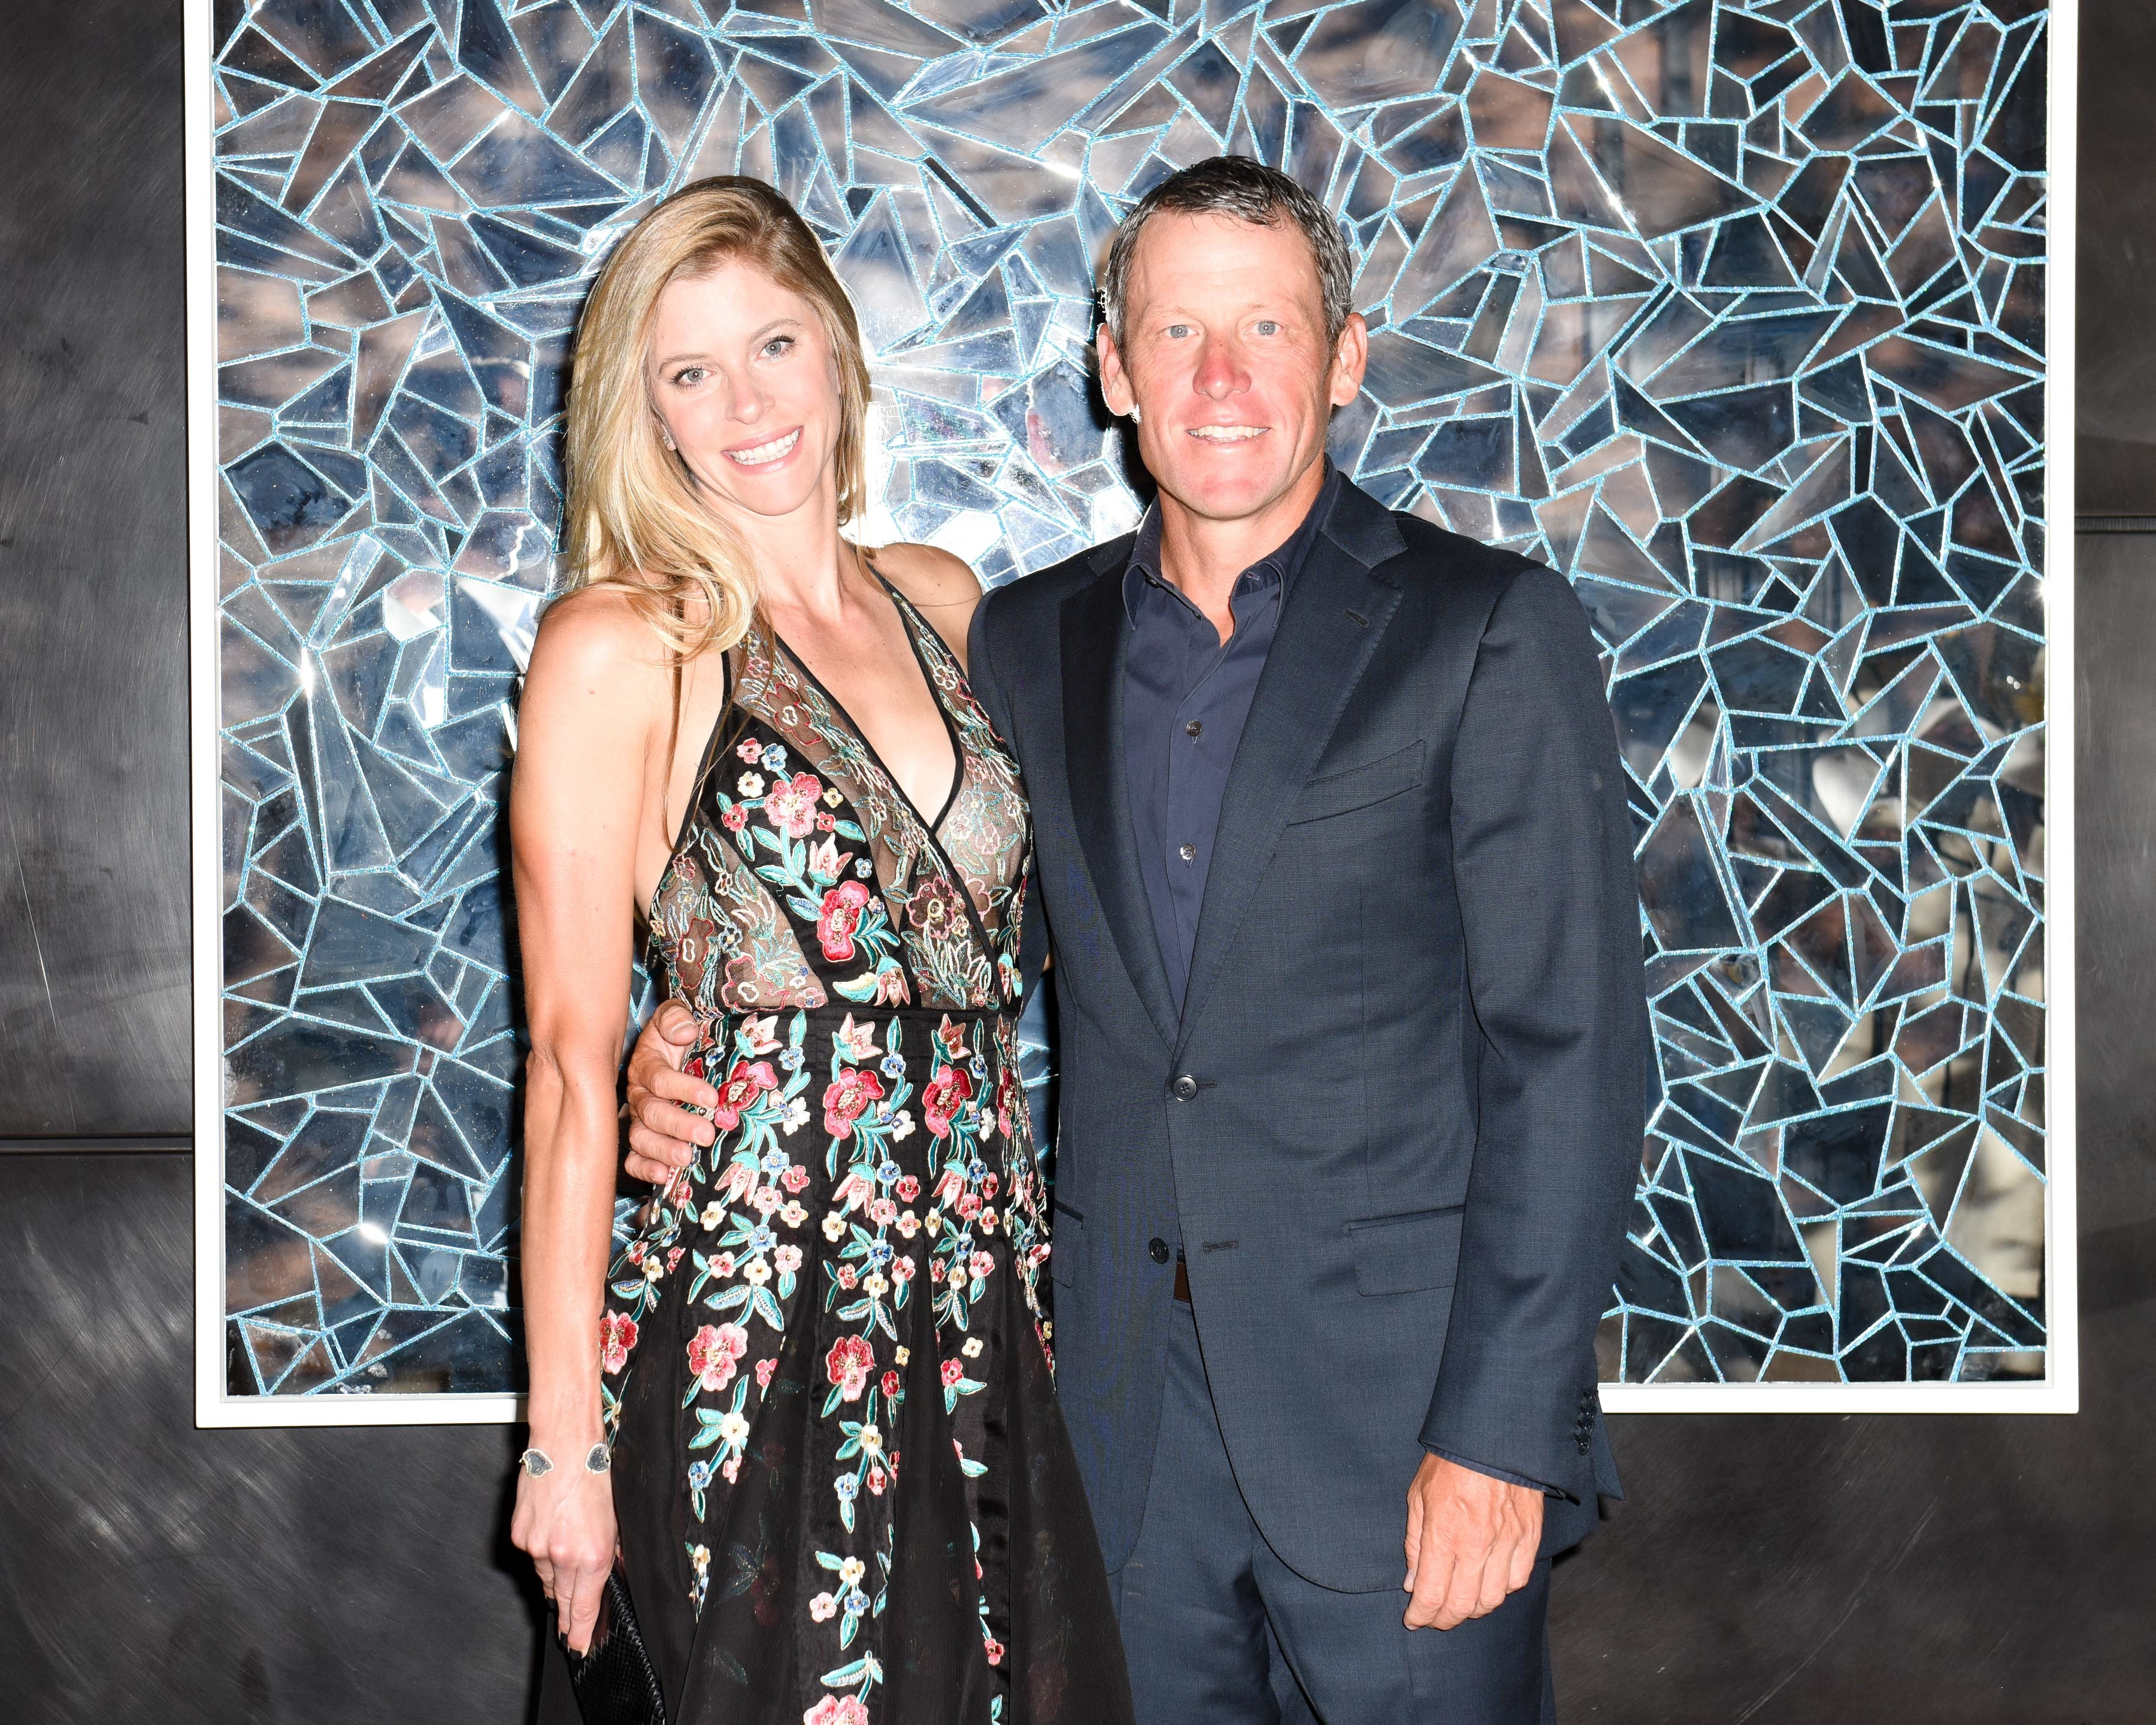 Anna Hansen and  Lance Armstrong at the Aspen Art Museum Wine Crush in Aspen, Colorado on Aug. 3, 2016.